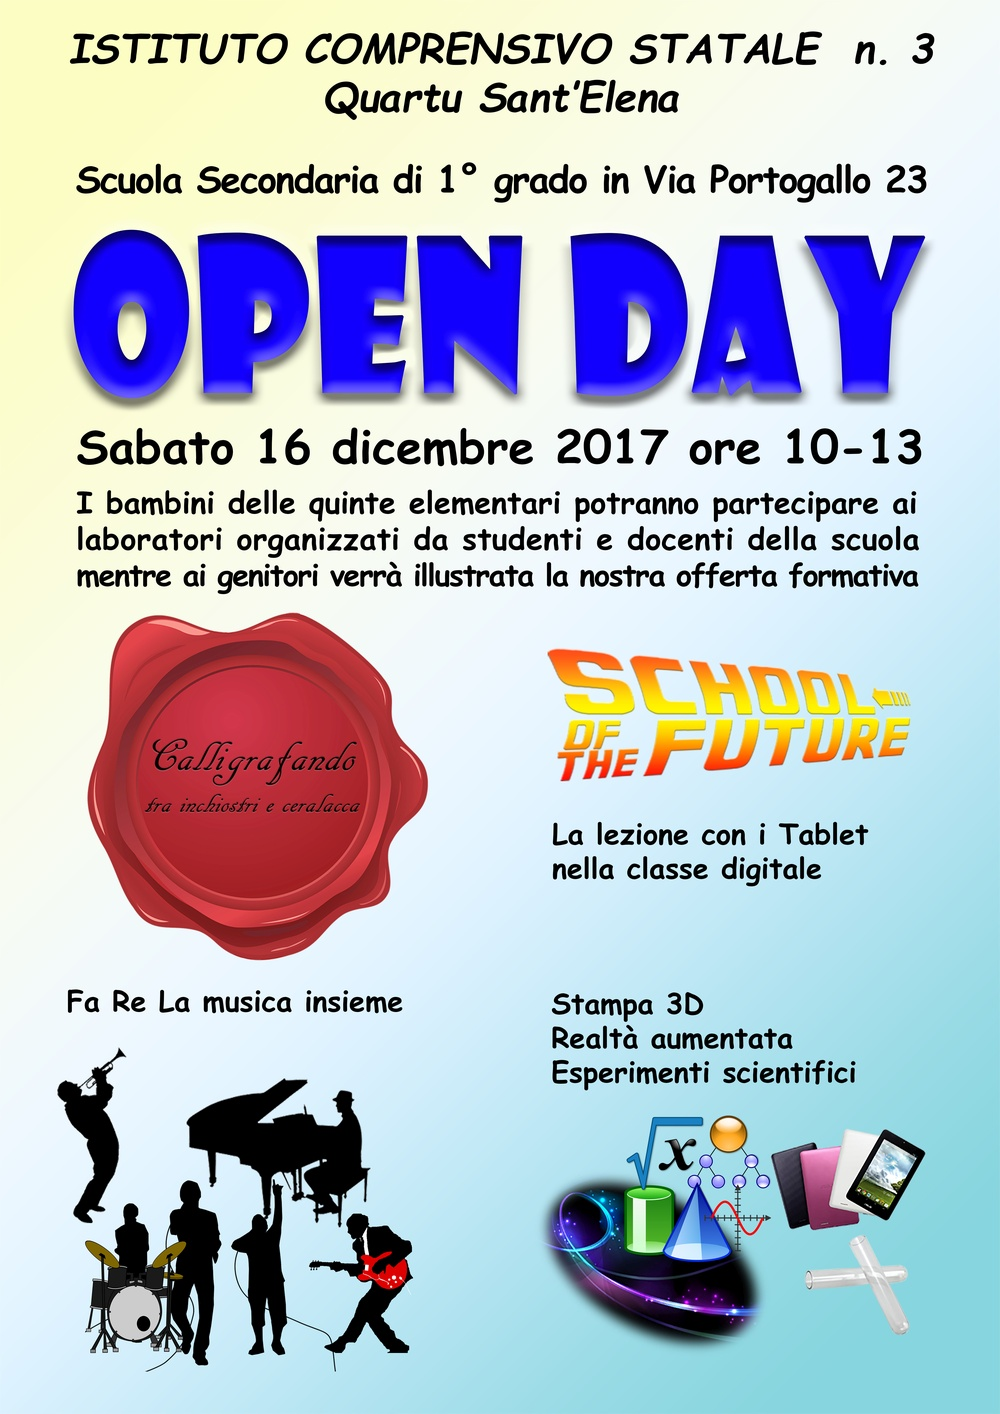 openday2017 2018 r